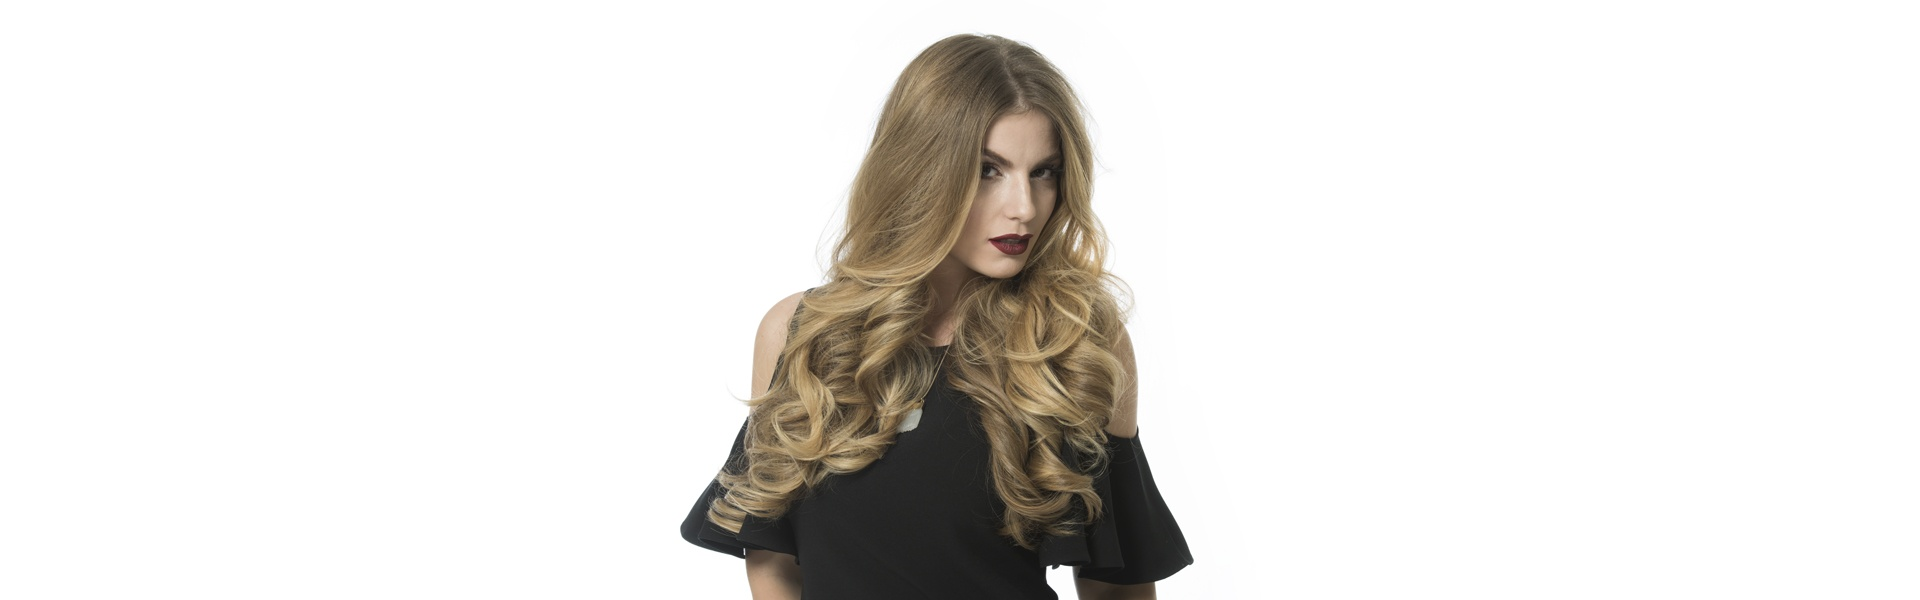 Dallas best balayage highlights plano frisco best balayage for Aalam the salon reviews